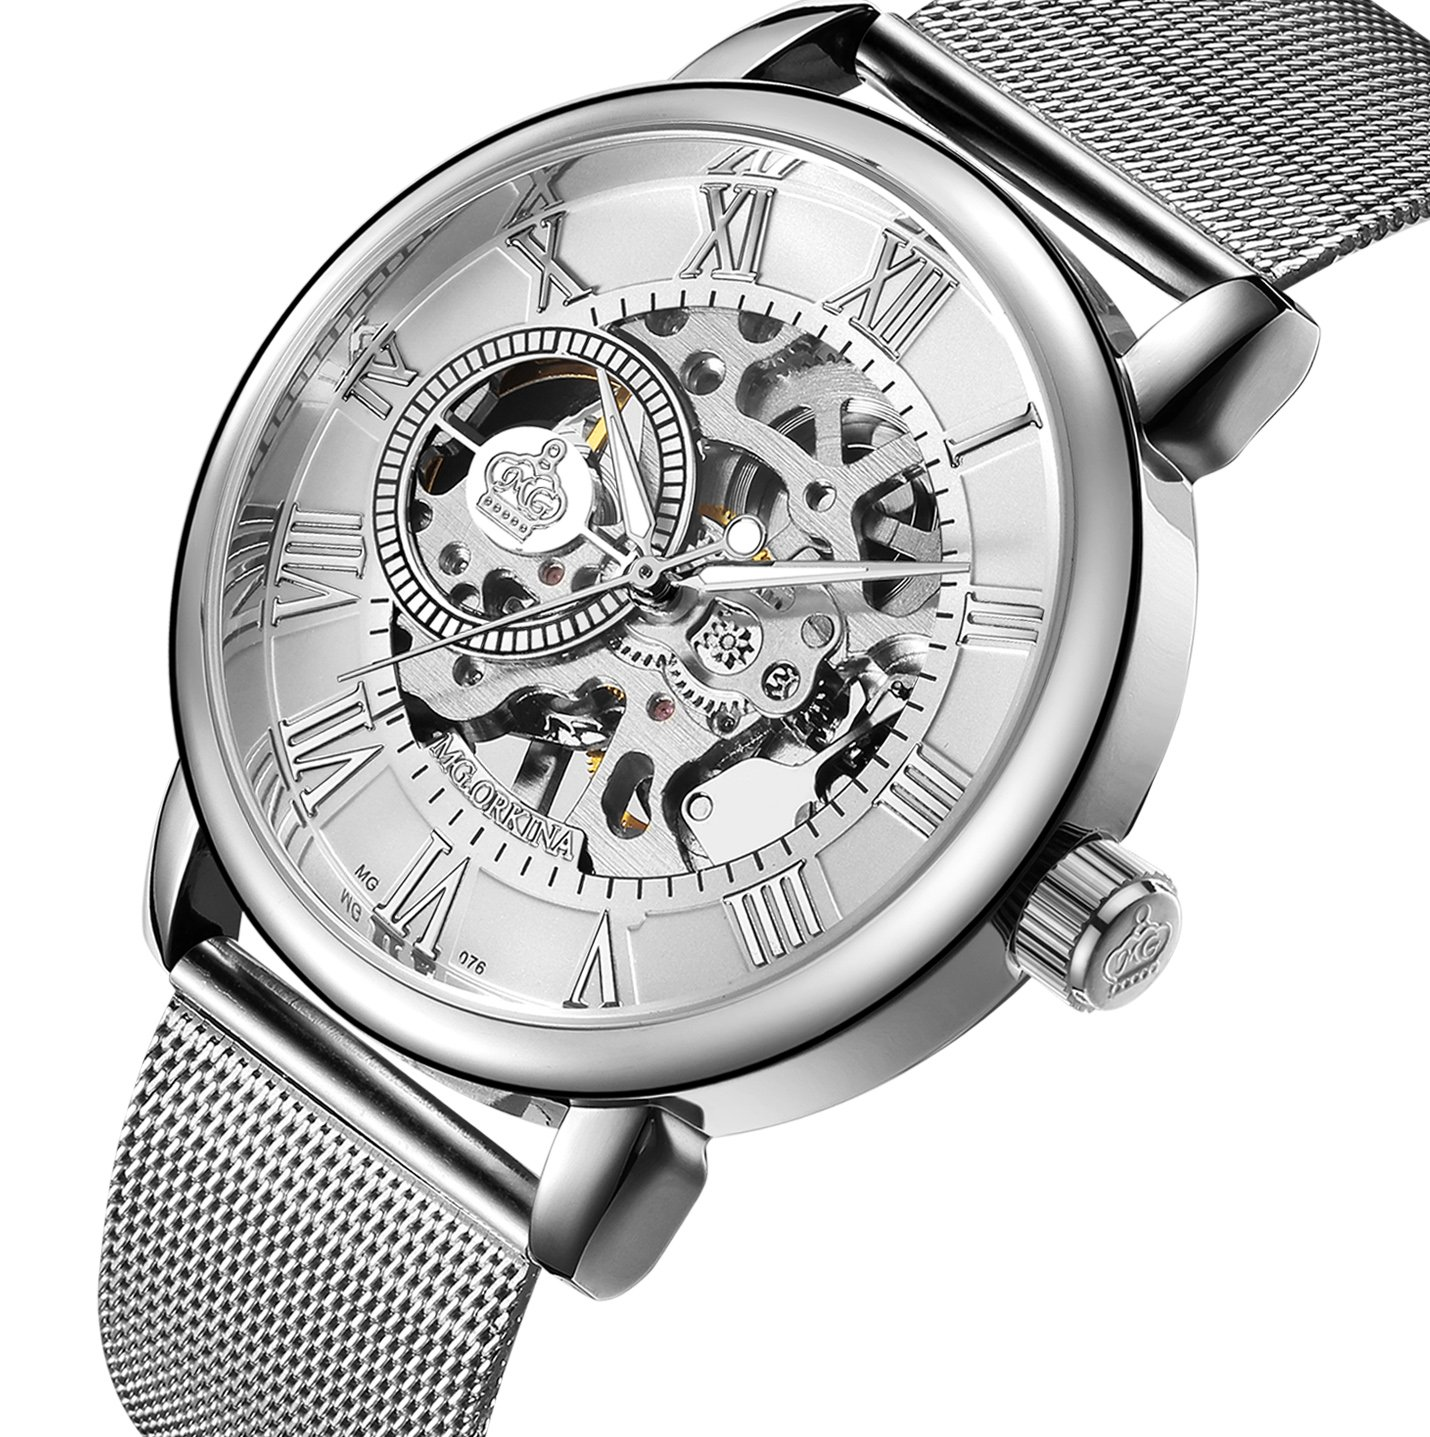 Sweetbless Wristwatch Men's Royal Classic Roman Index Hand-wind Mechanical Watch (silver-white) by Sweetbless